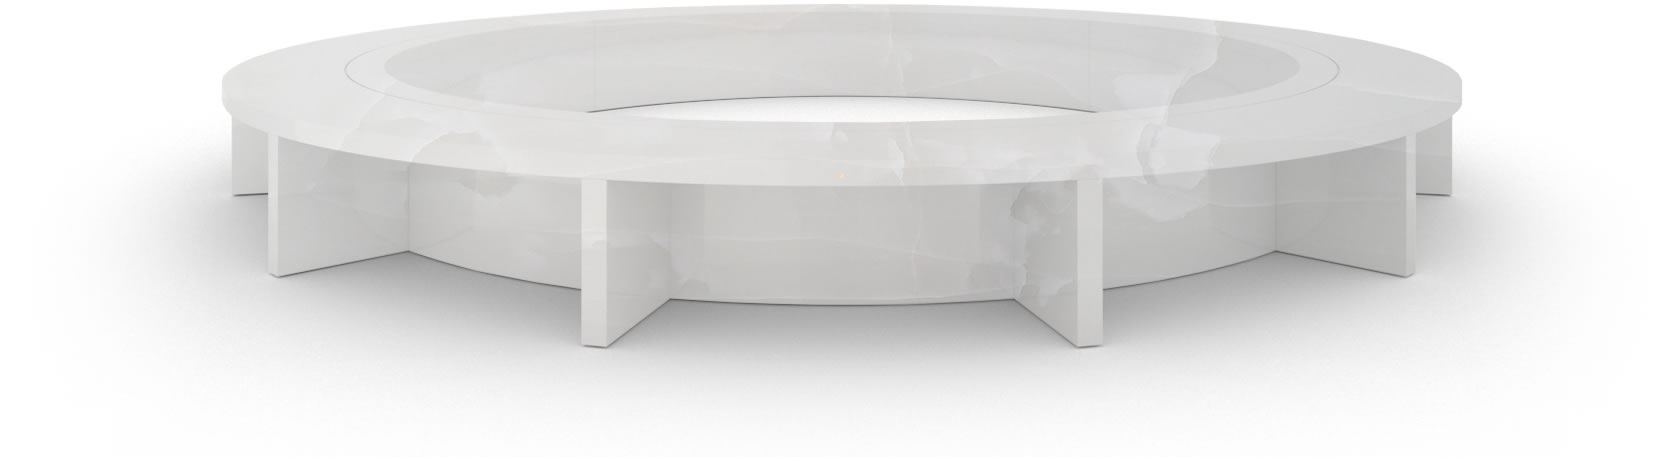 FELIX SCHWAKE BOARDROOM TABLE VI oval structure onyx marble white minimalist oval boardroom table structure